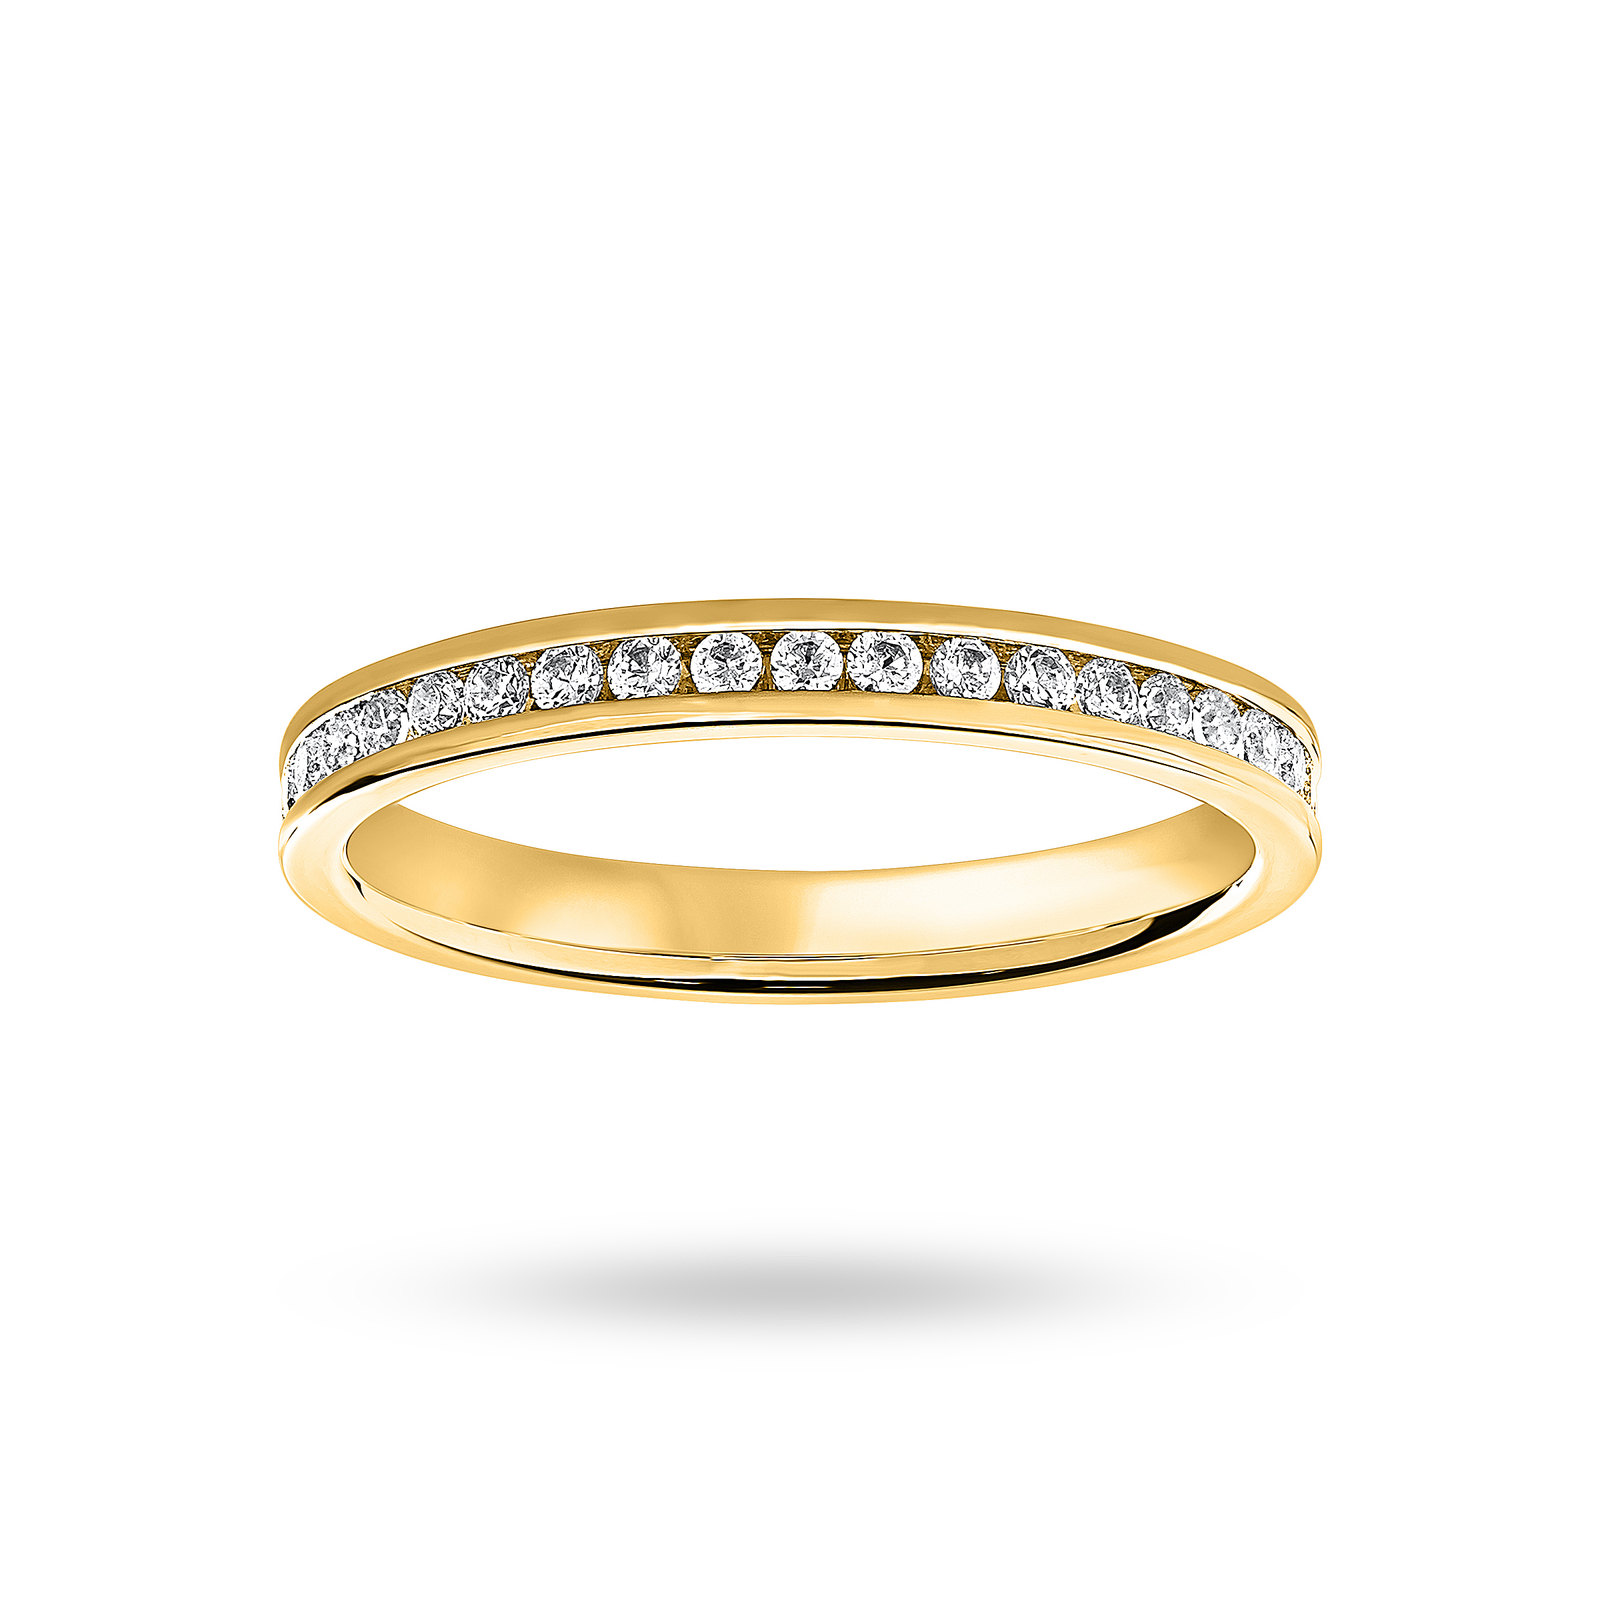 18ct Yellow Gold 0.50 Carat Brilliant Cut Channel Set Full Eternity Ring